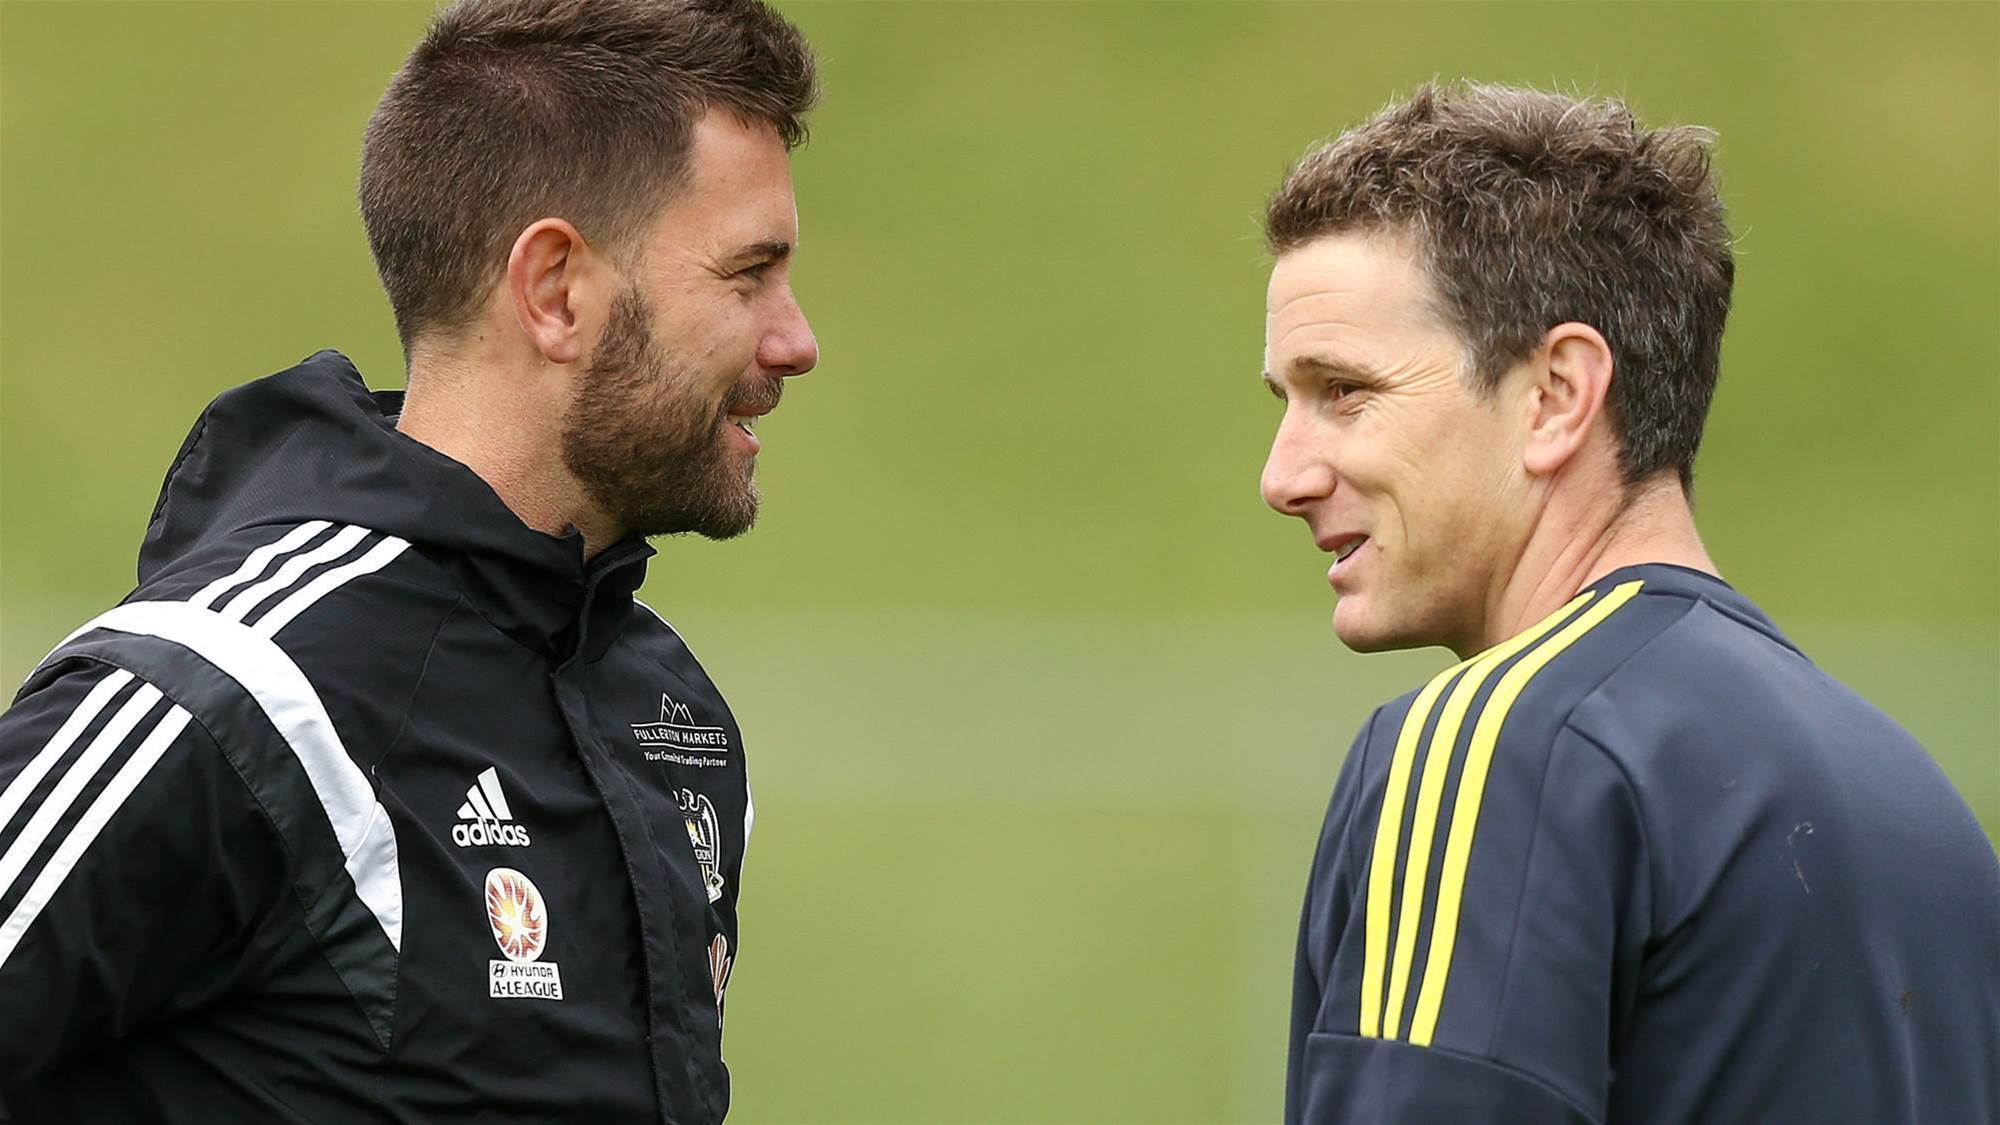 Nix win a tribute to 'perfect mentor' Merrick